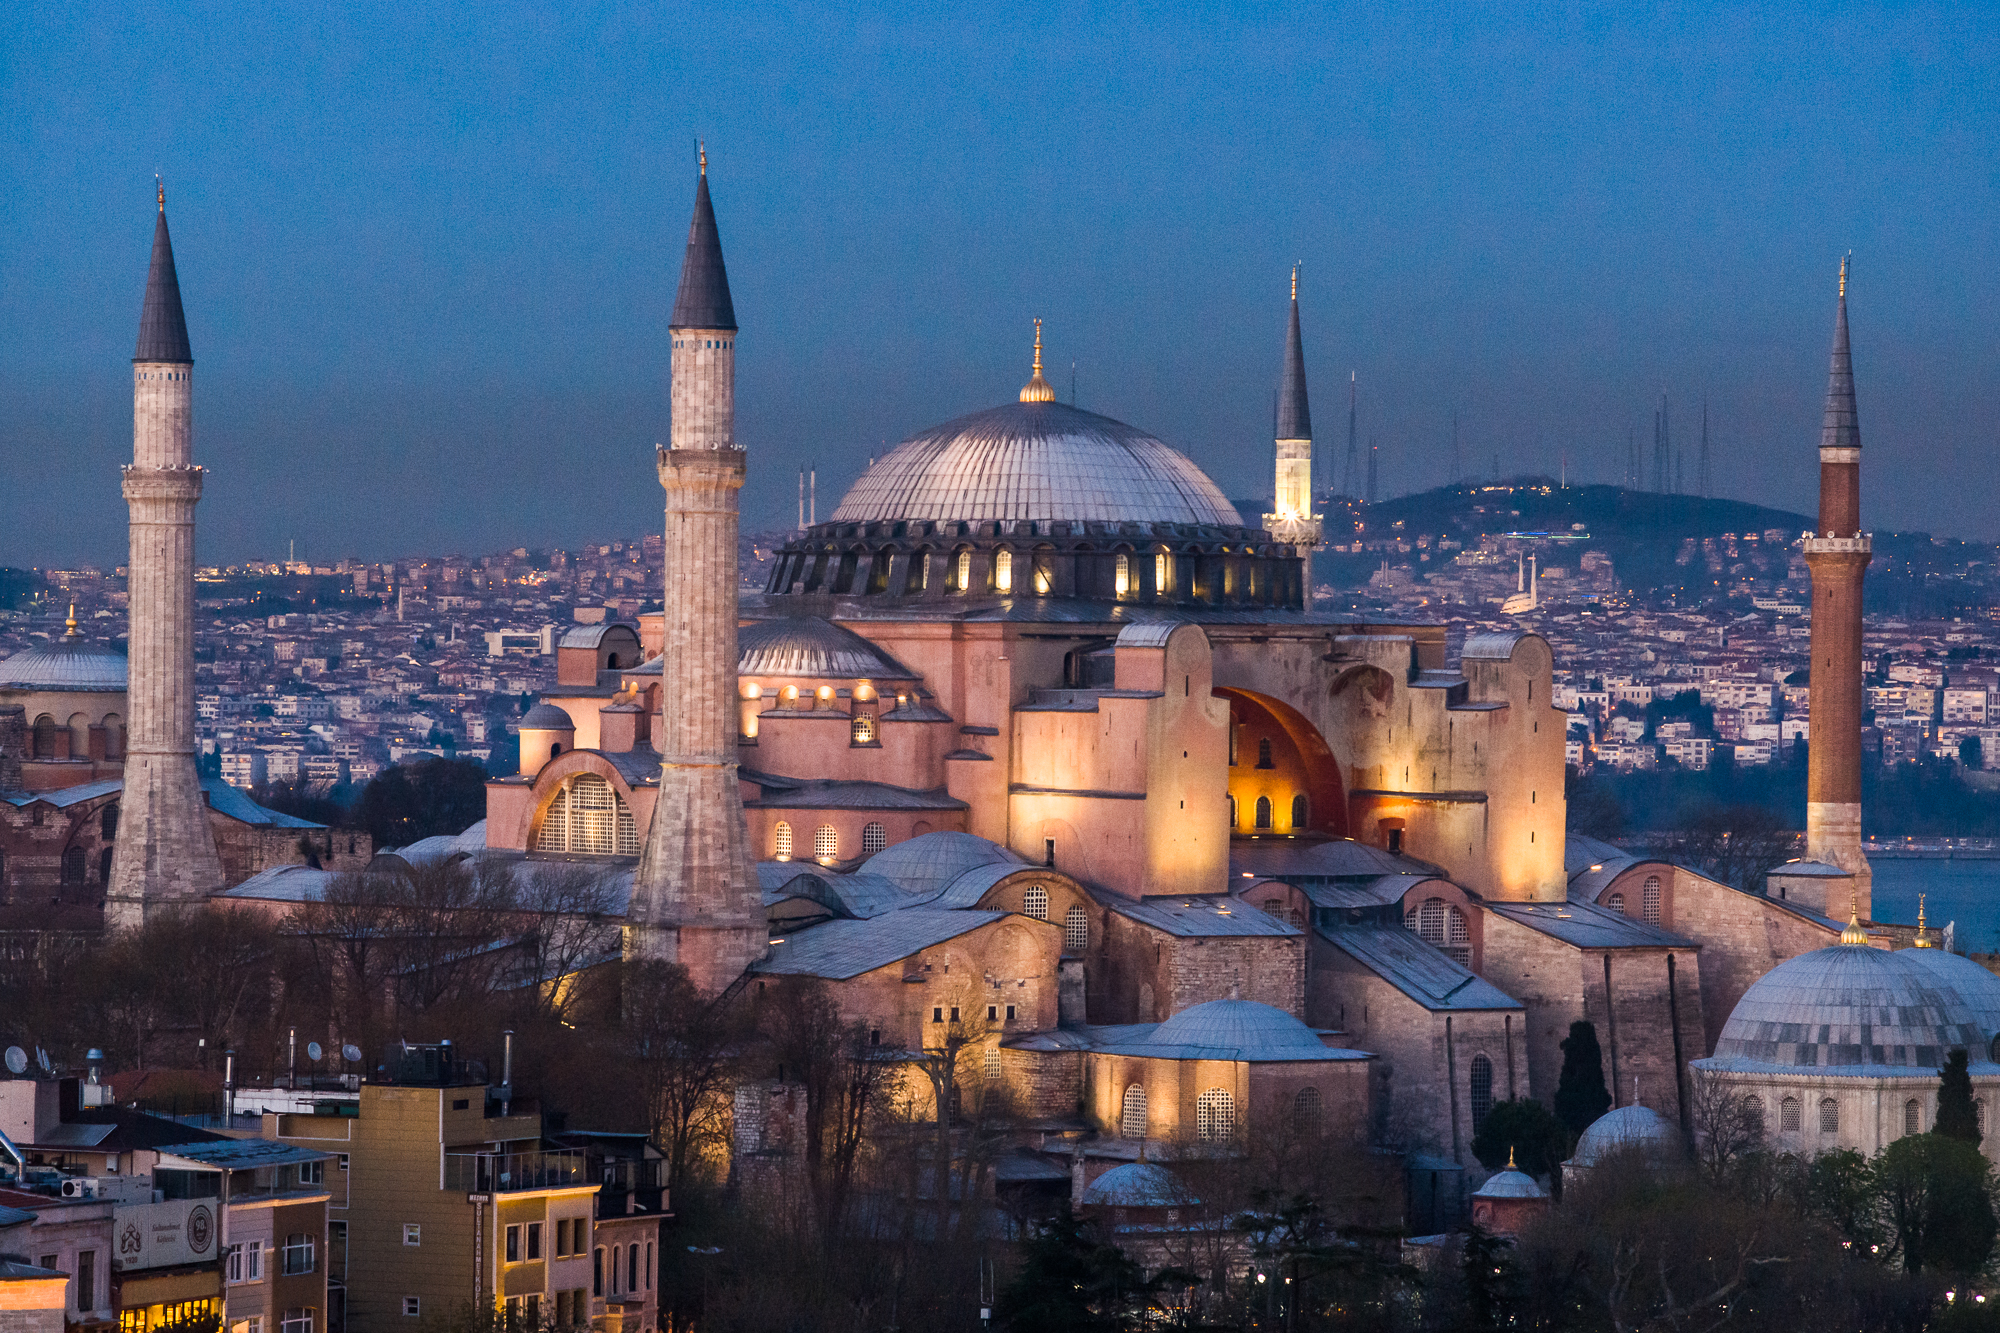 Daily Istanbul Tours will help you really see the Hagia Sophia